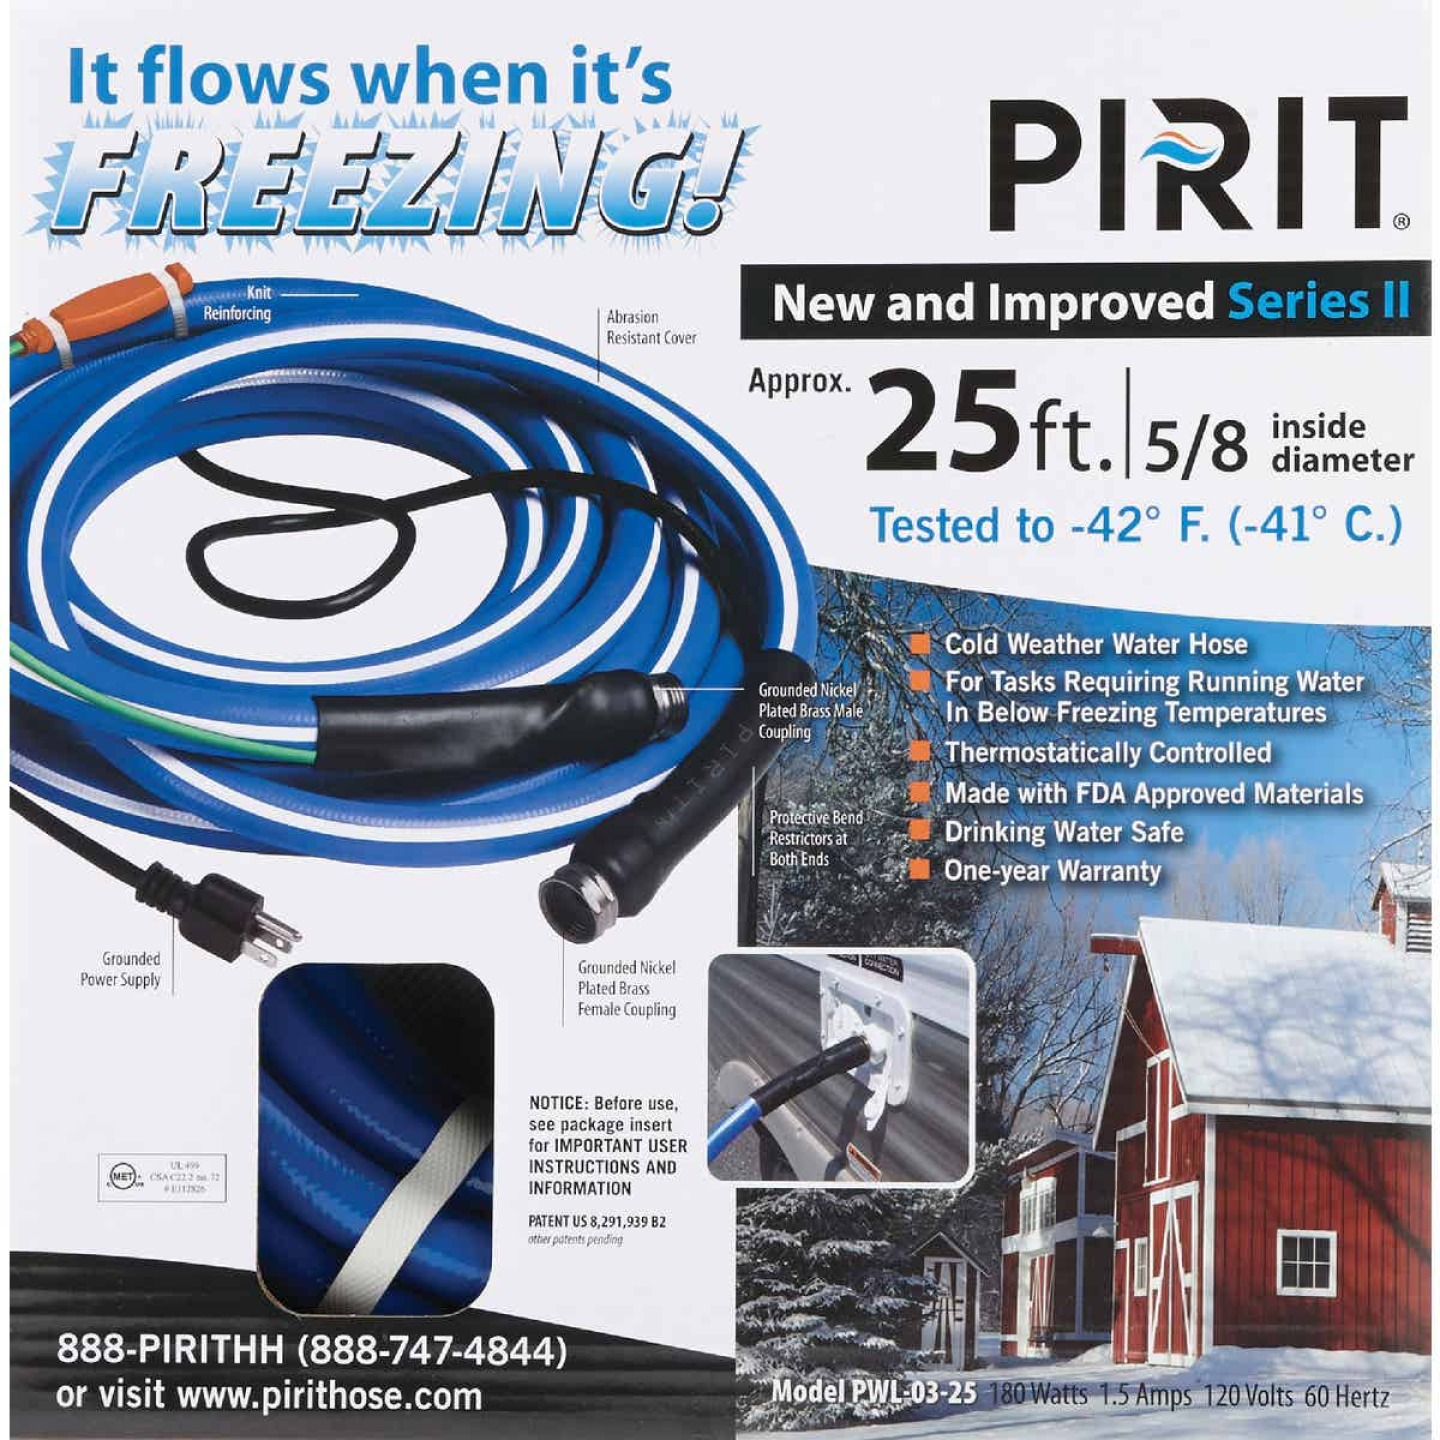 Pirit 5/8 In. Dia. x 25 Ft. L. Heated Water Hose Image 2